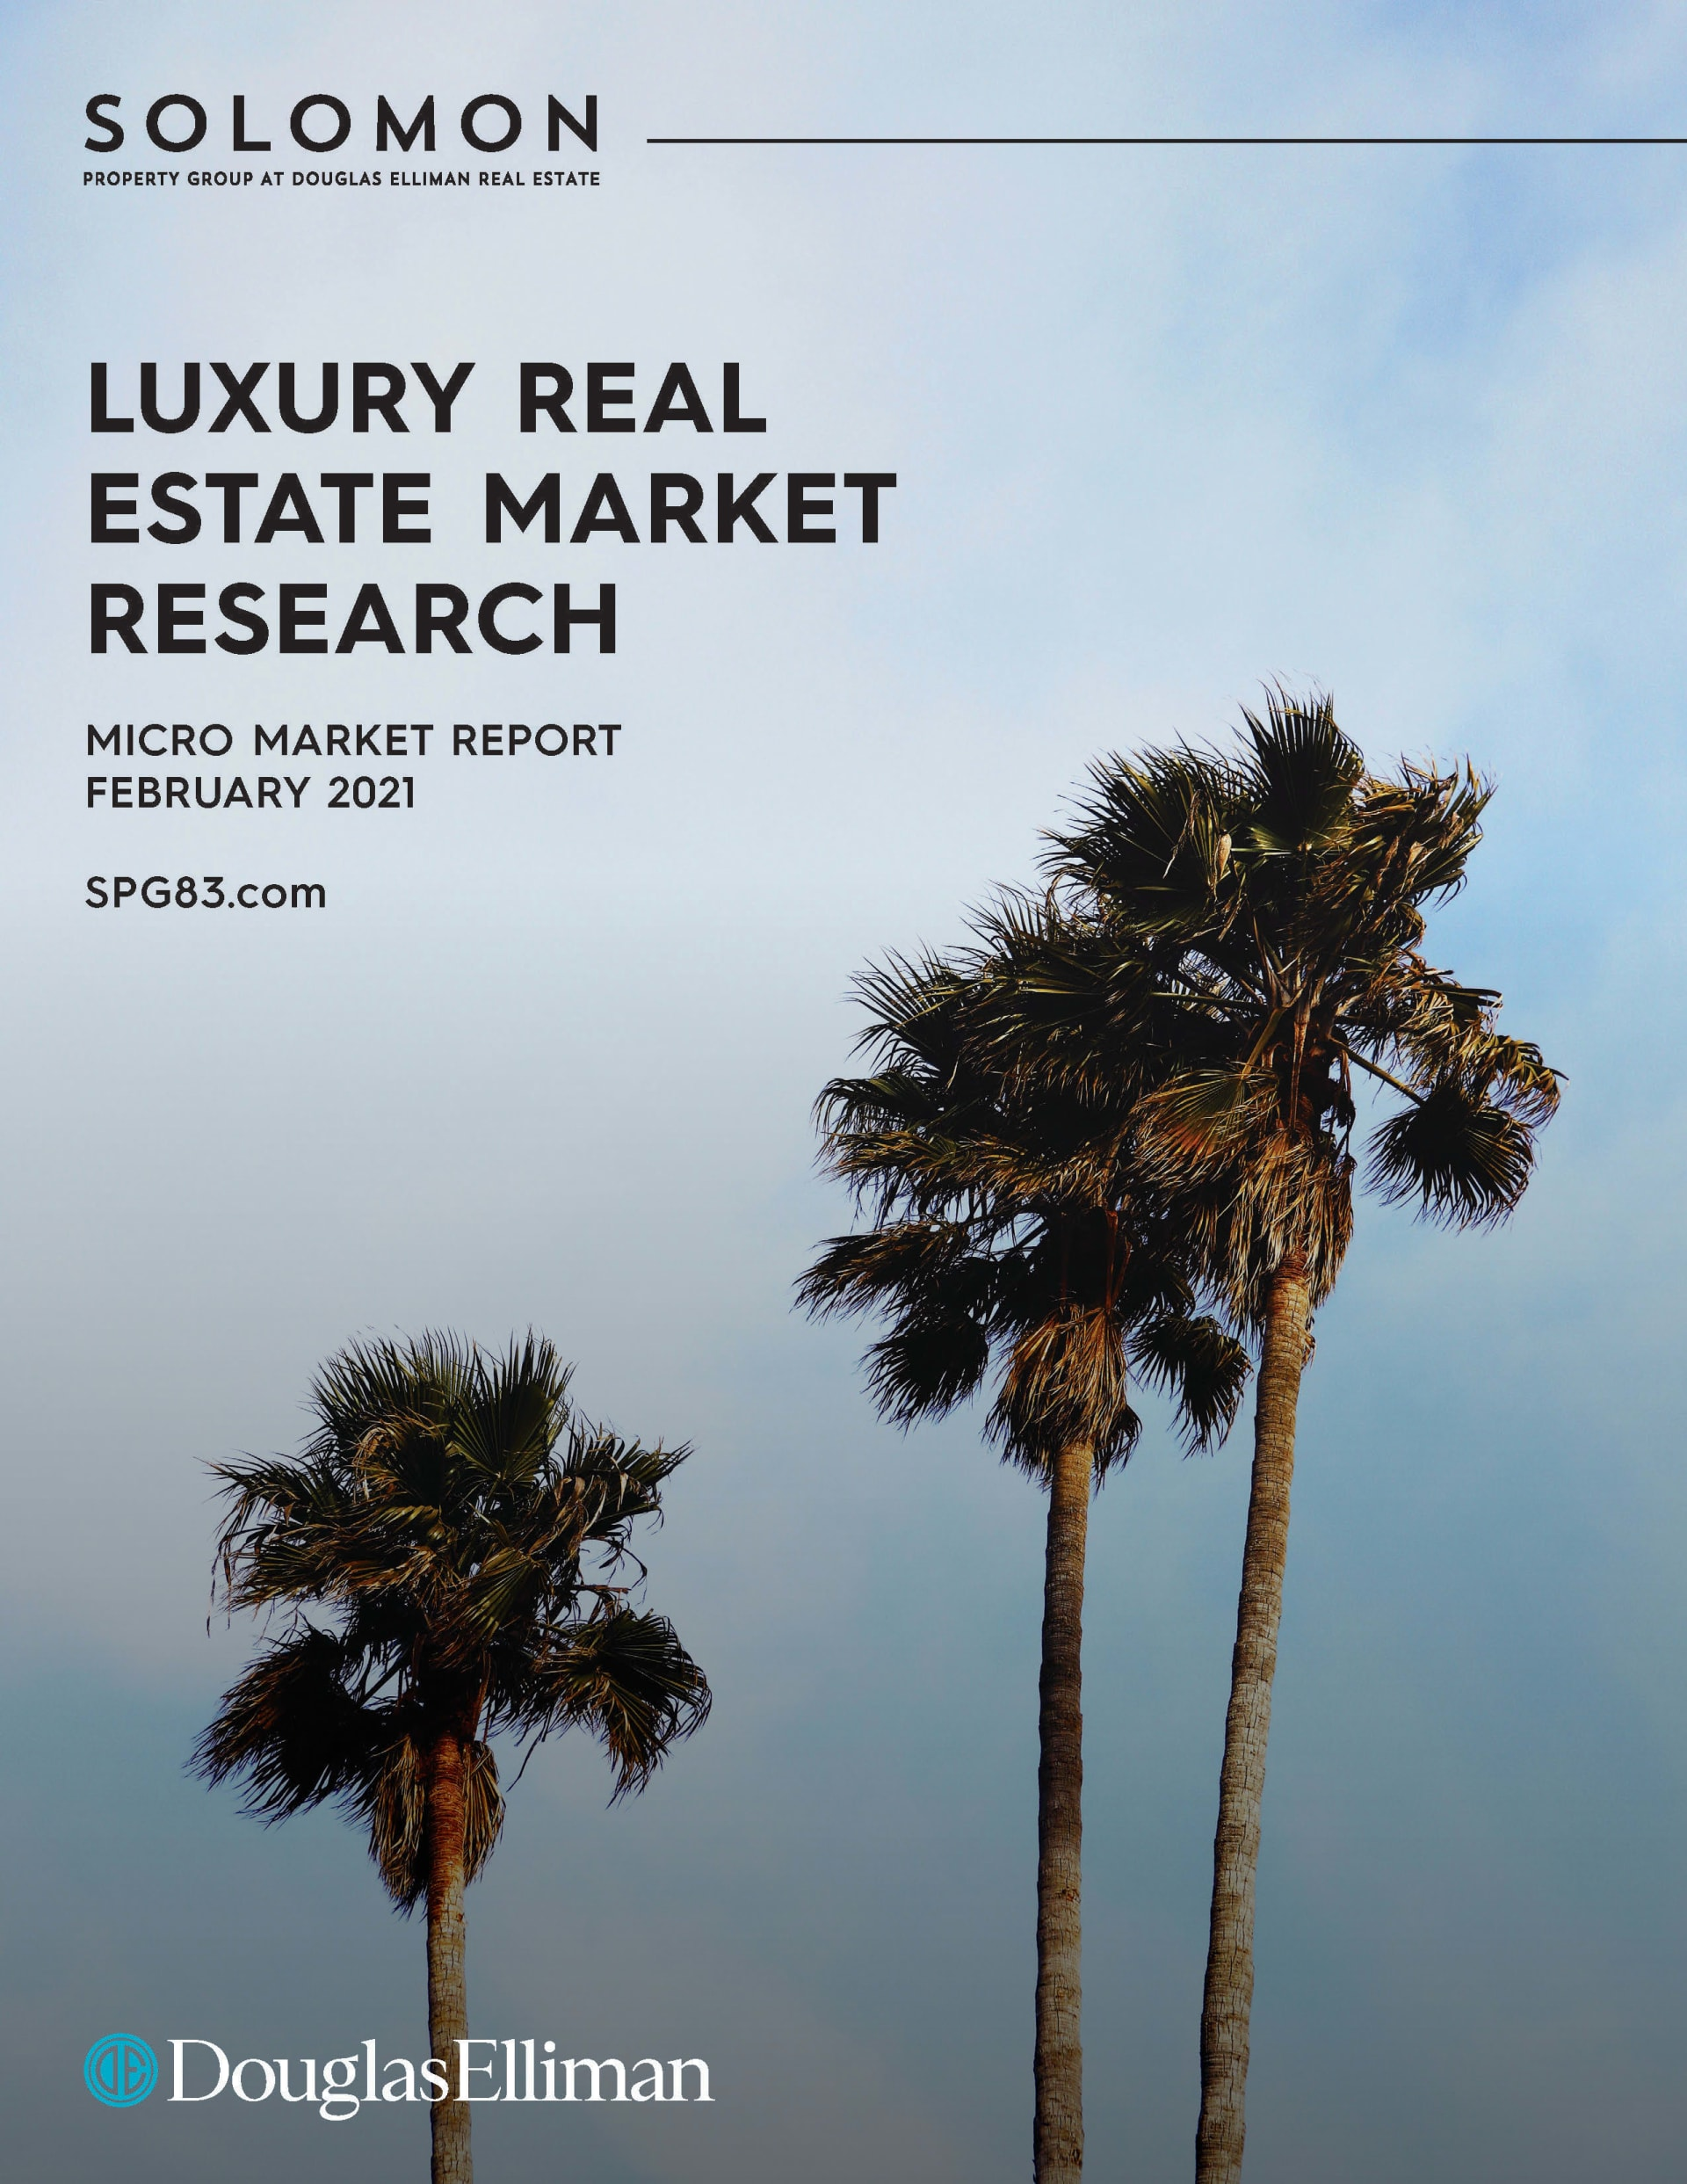 Luxury Real Estate Market Research, Micro Report, February 2021, Solomon Property Group